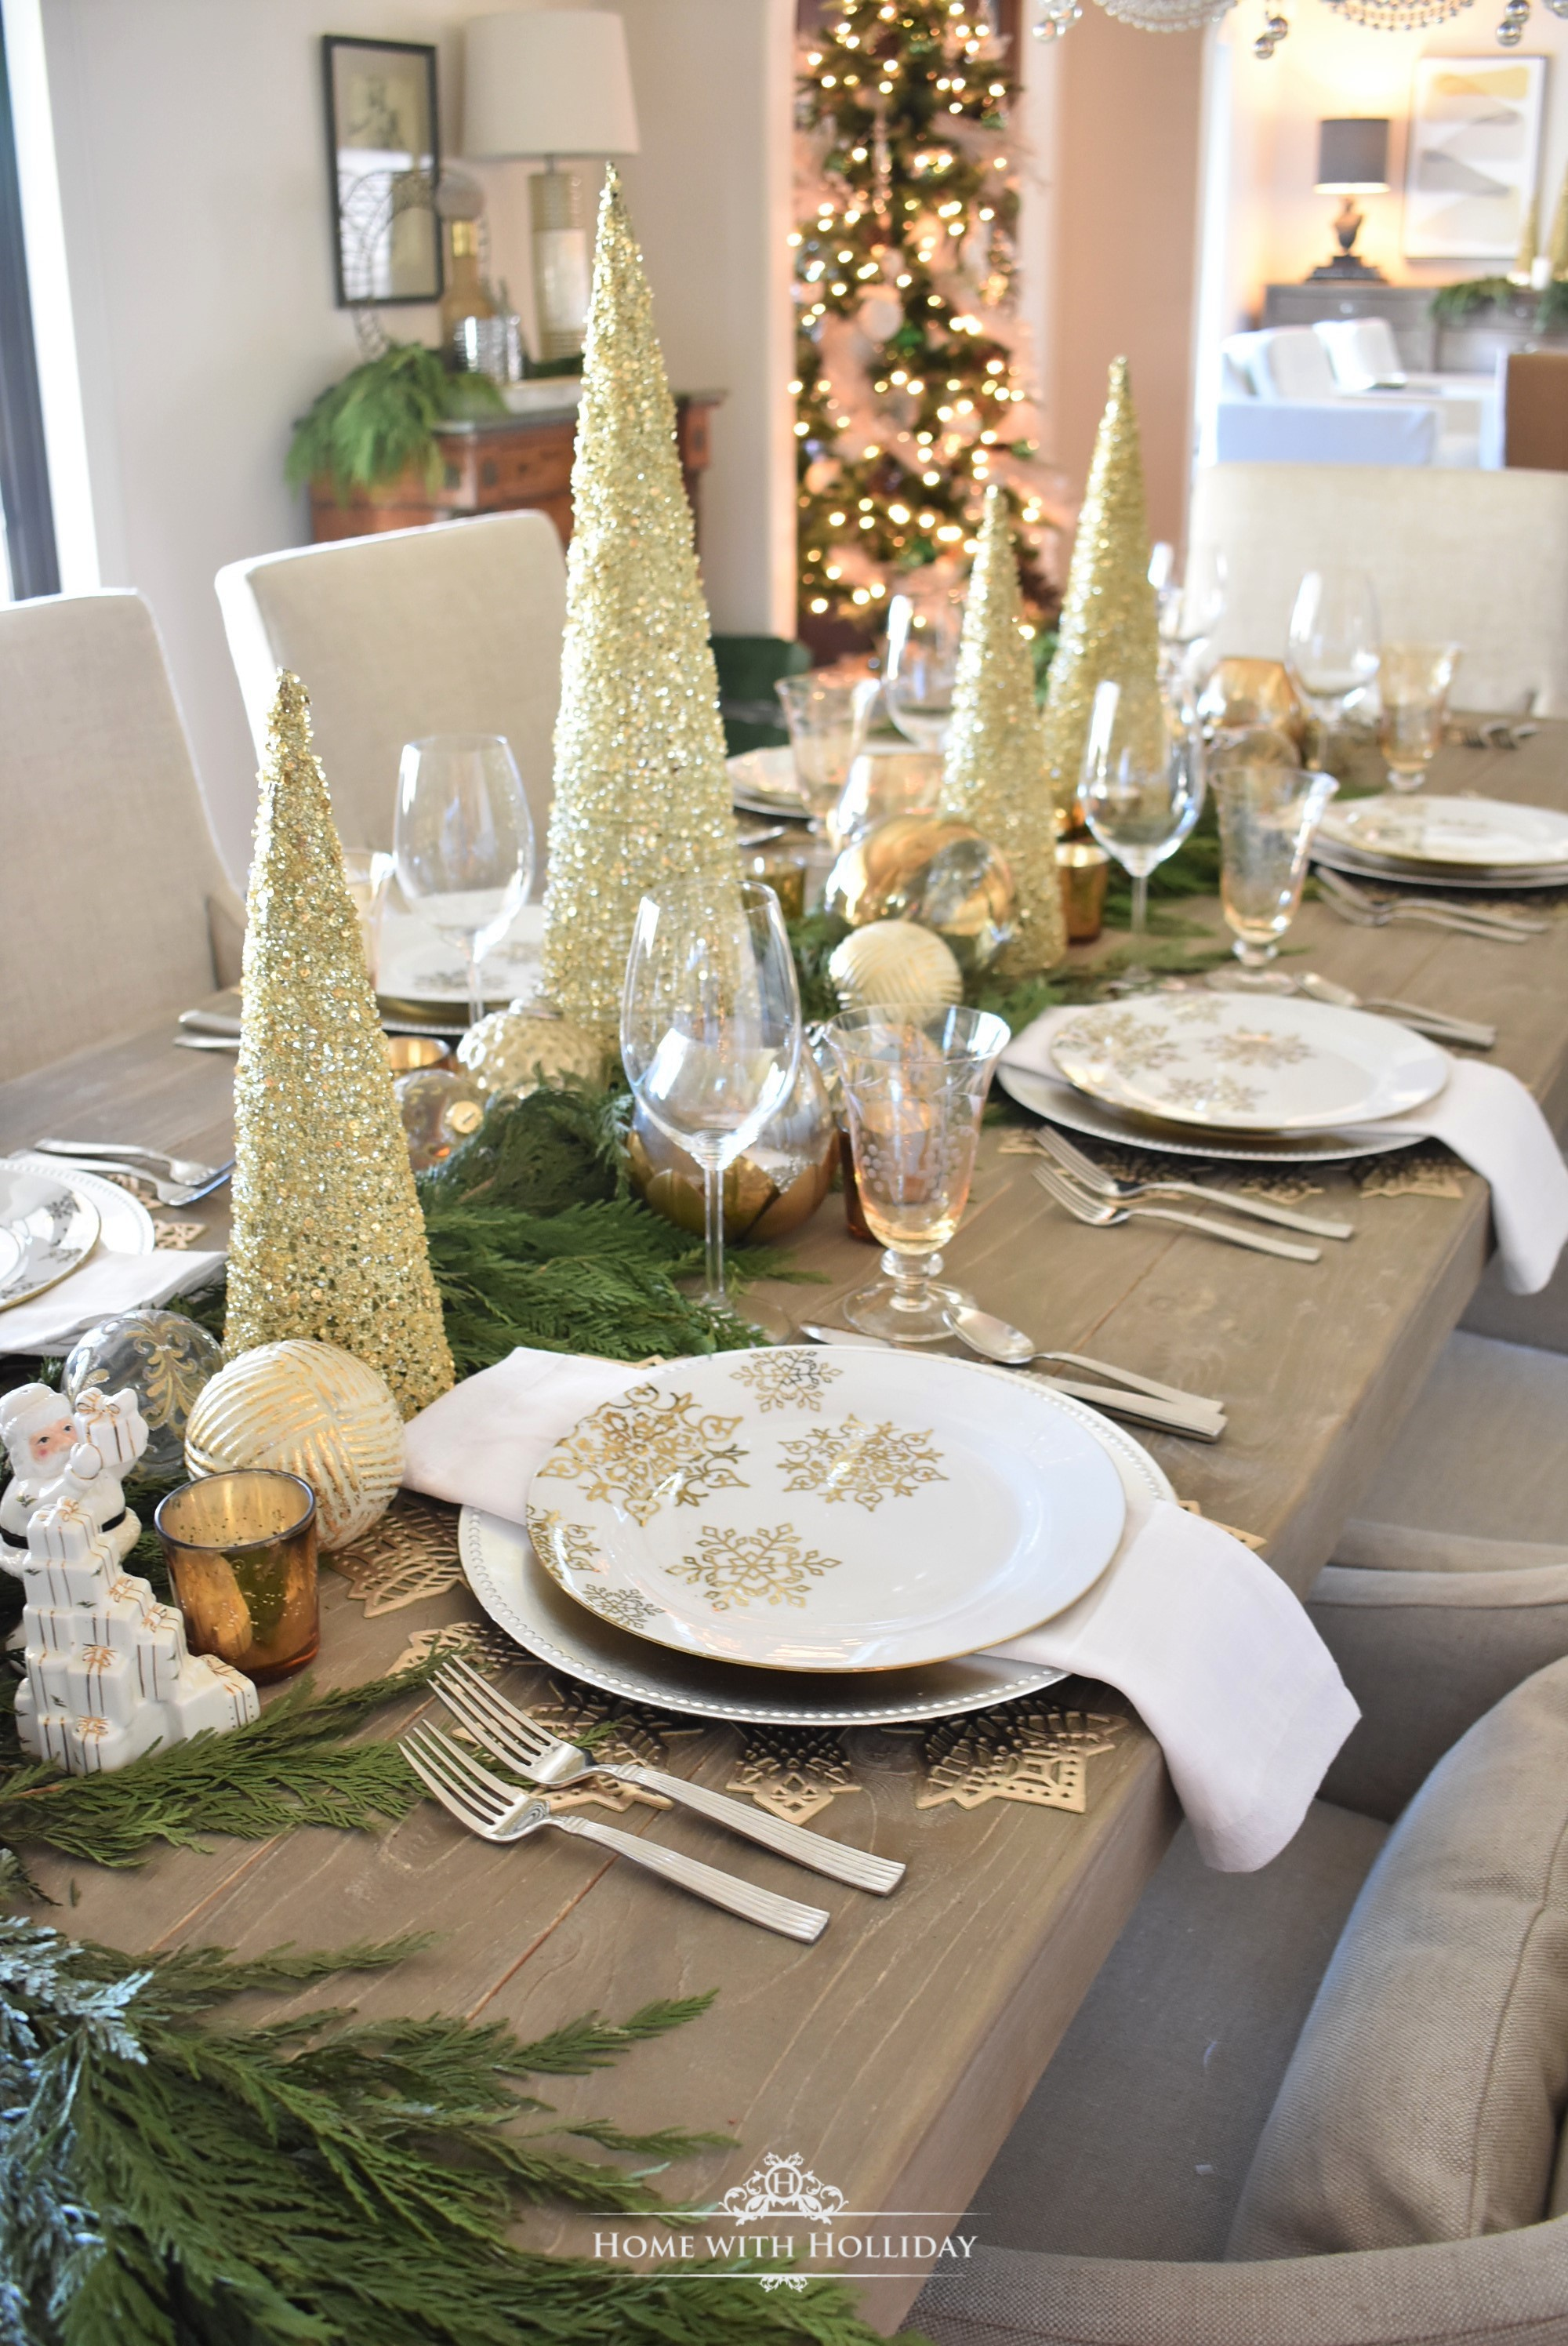 My Gold and Silver Snowflake Christmas Table Setting - Home with Holliday